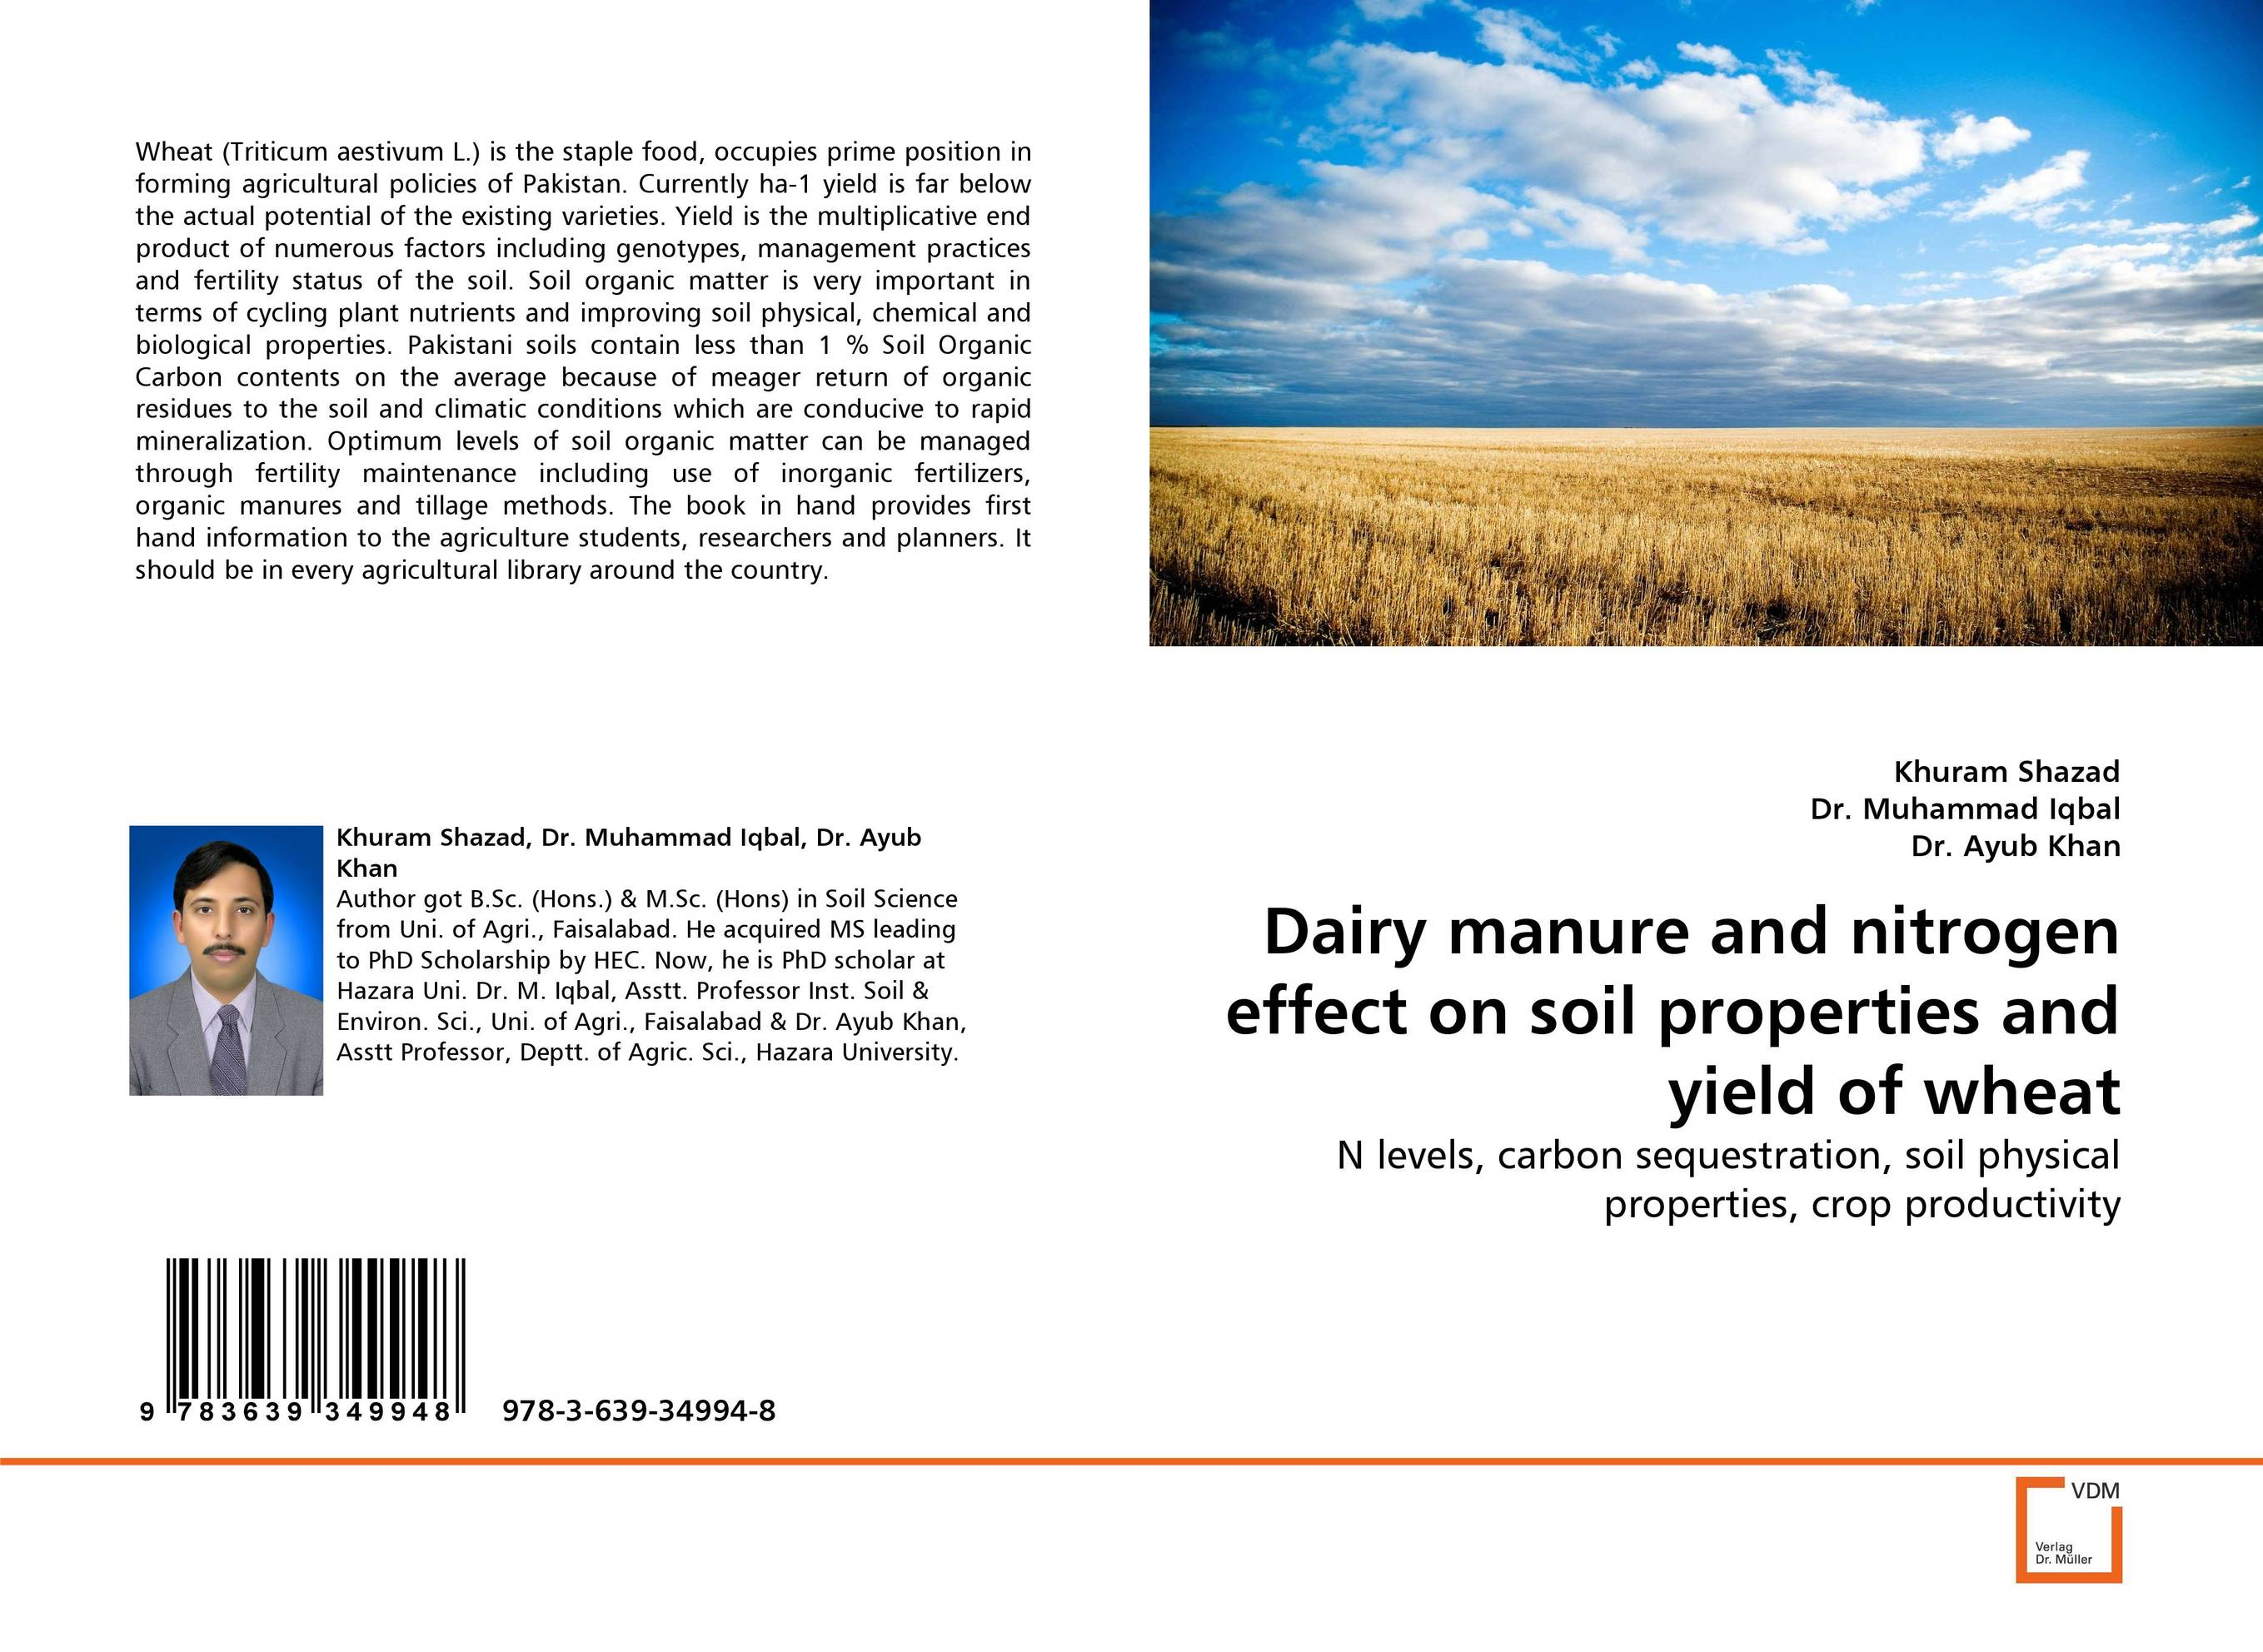 Dairy manure and nitrogen effect on soil properties and yield of wheat effect of methods of composting on quality of compost from wheat straw